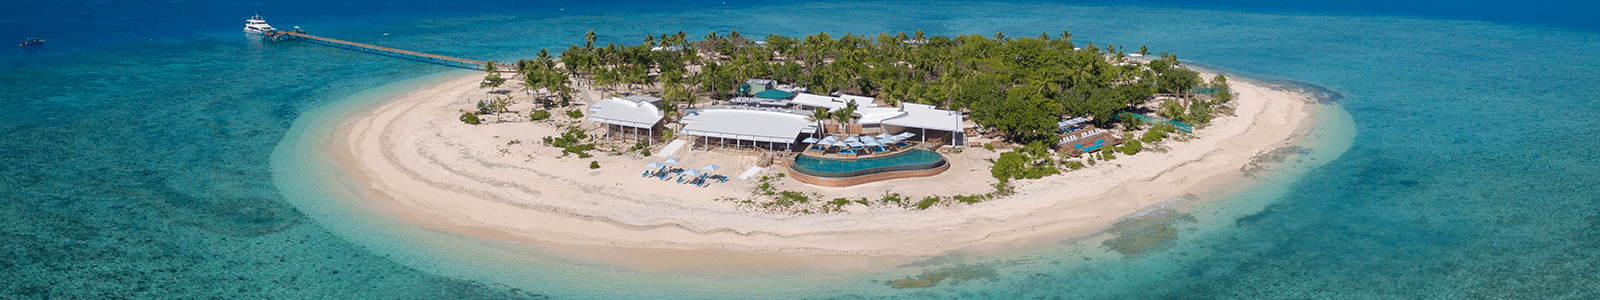 Malamala Beach Club Fiji Island Front Aerial View Header